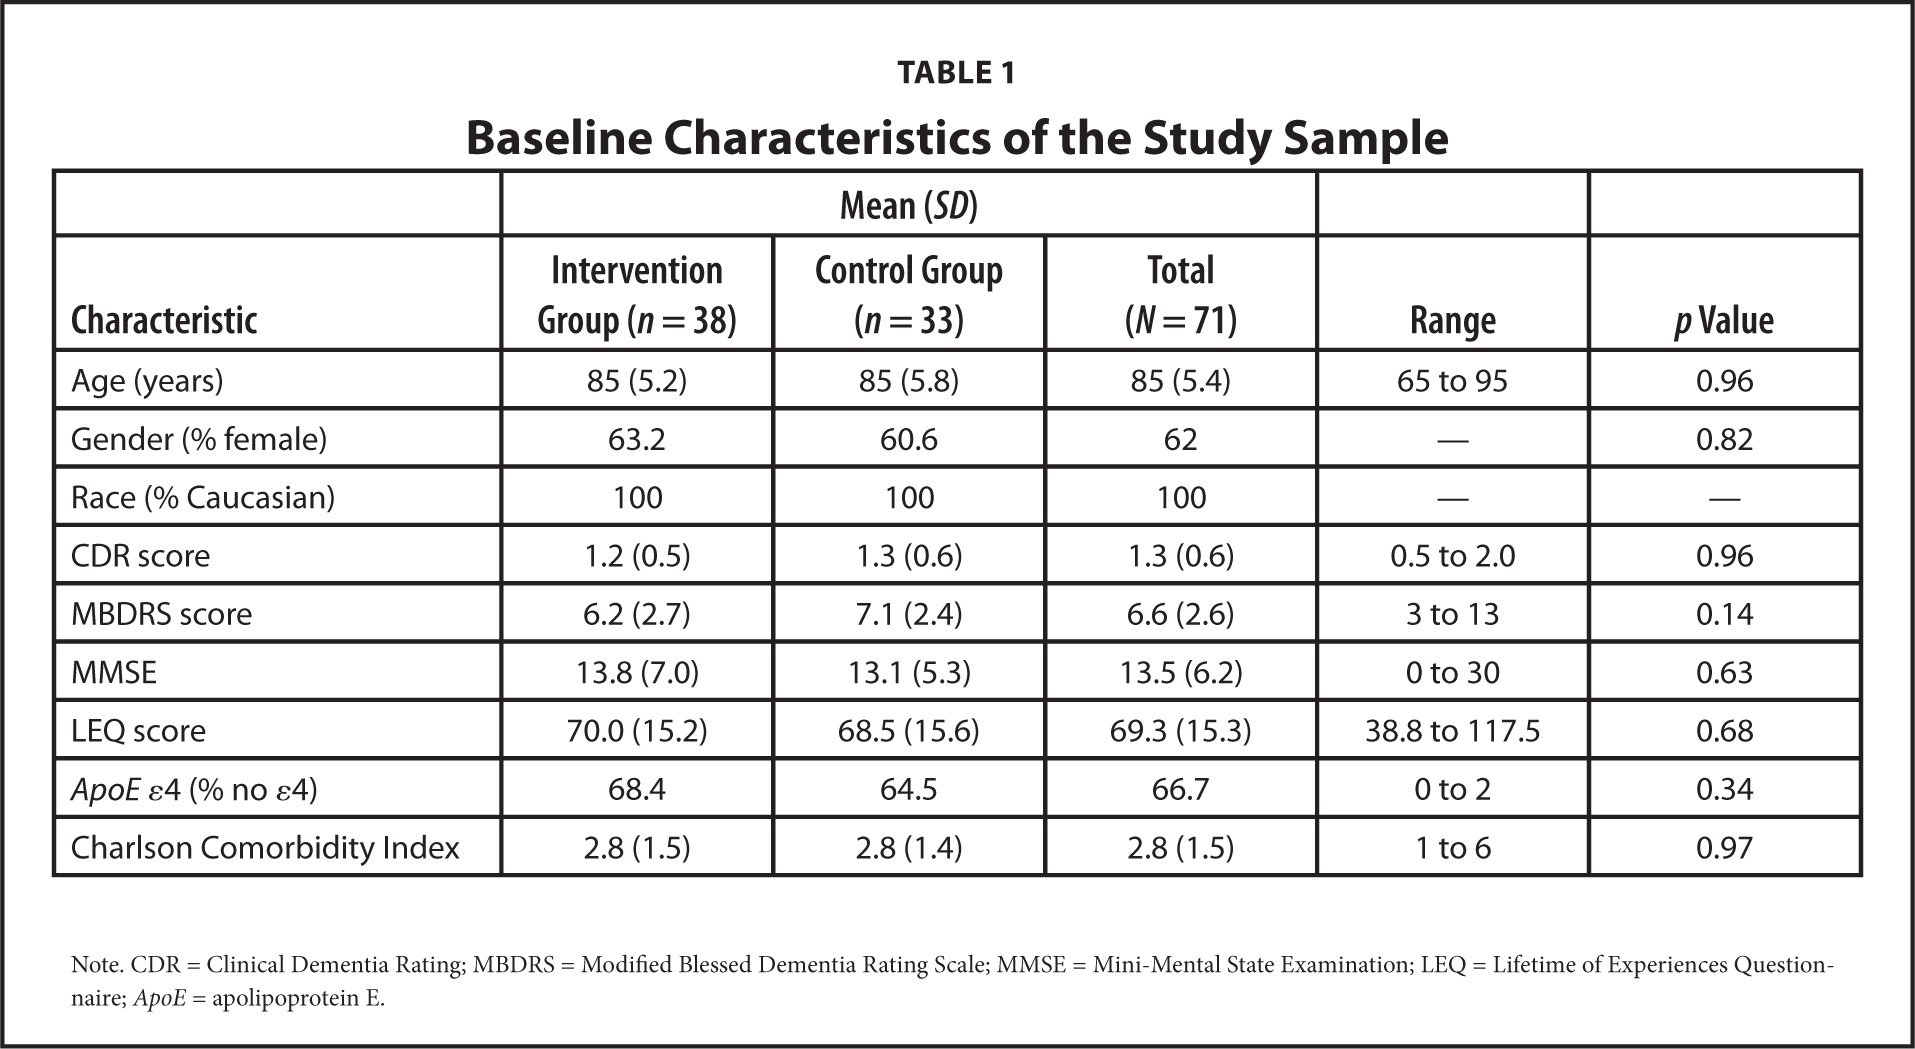 Baseline Characteristics of the Study Sample